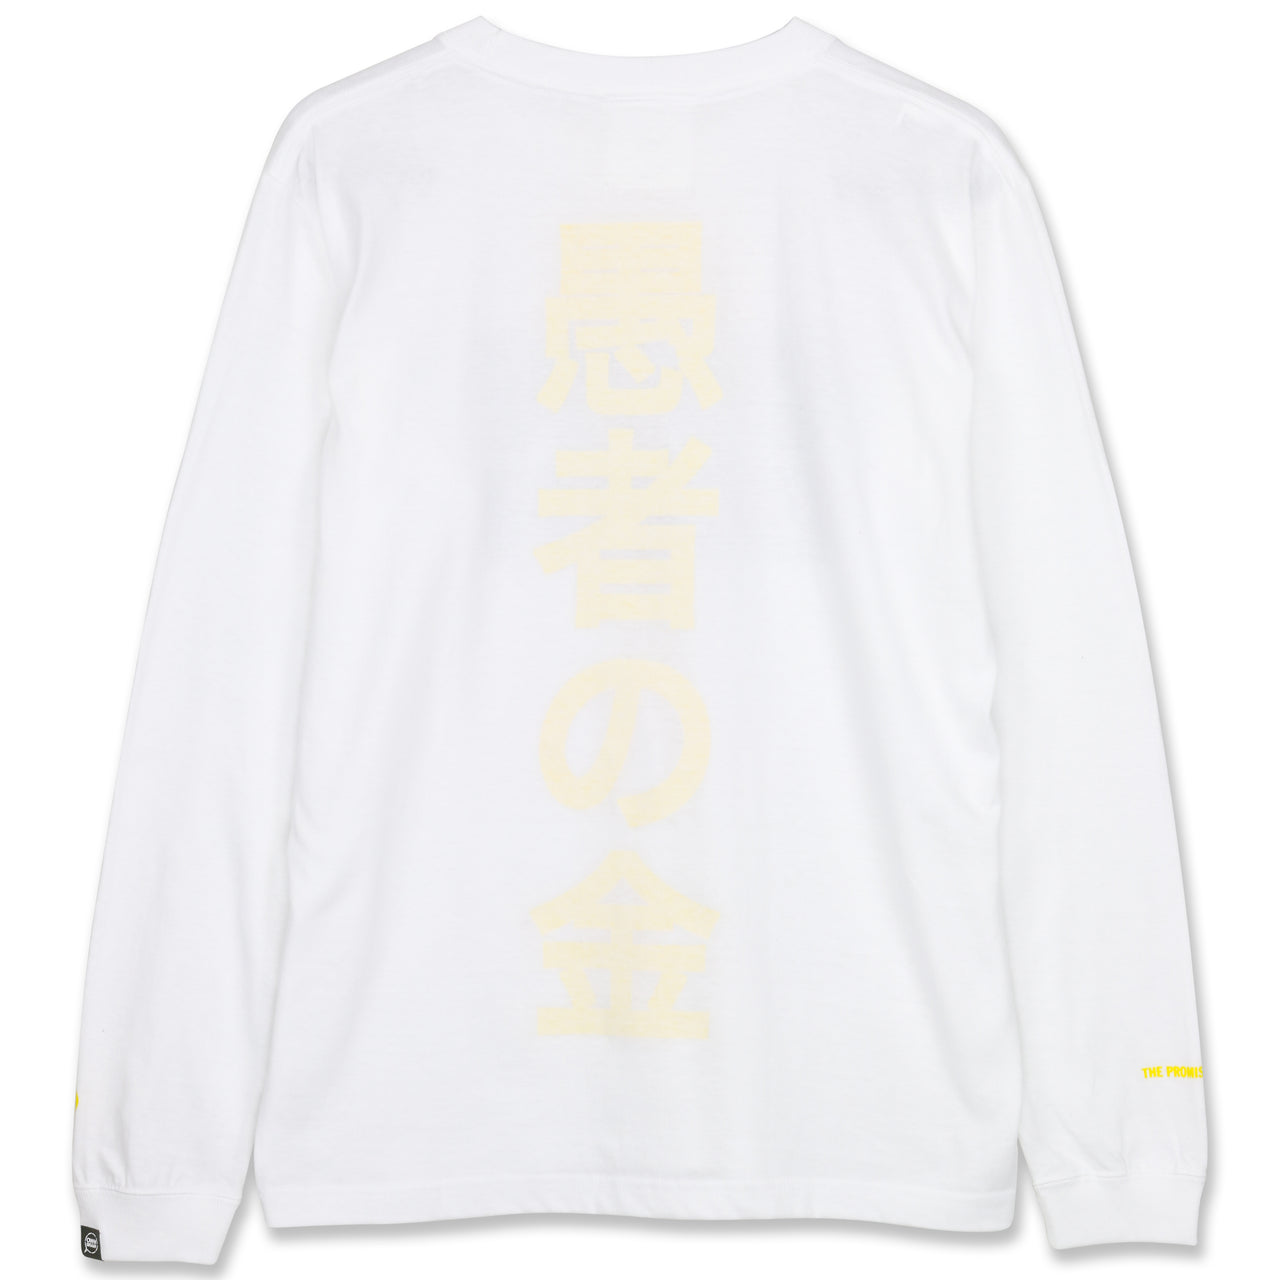 A.Four x Ownbrain Long Sleeve Tee